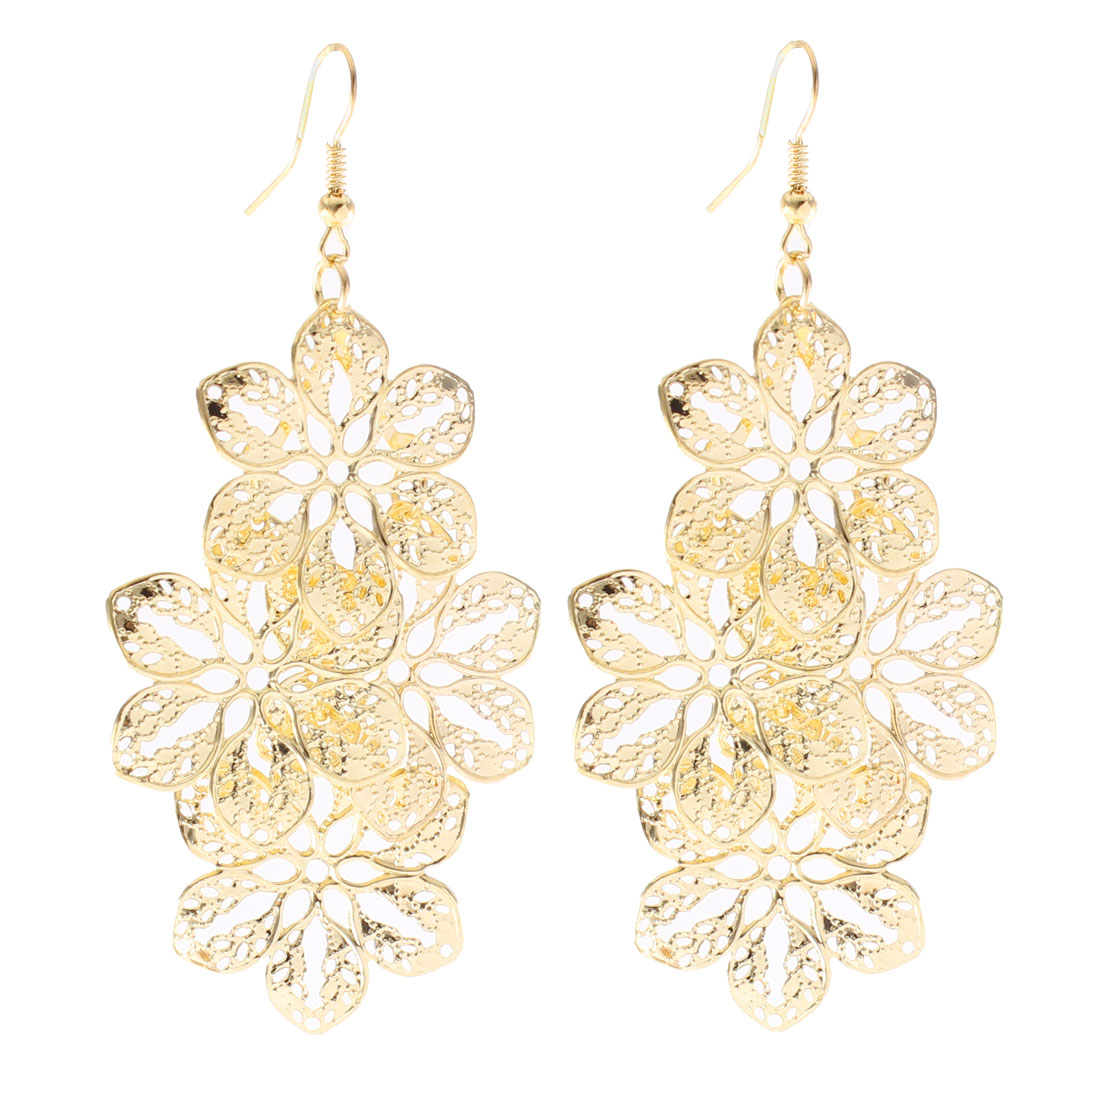 Pair Gold Tone Hollow Out Flower Pendant Wedding Party Fish Hook Earrings